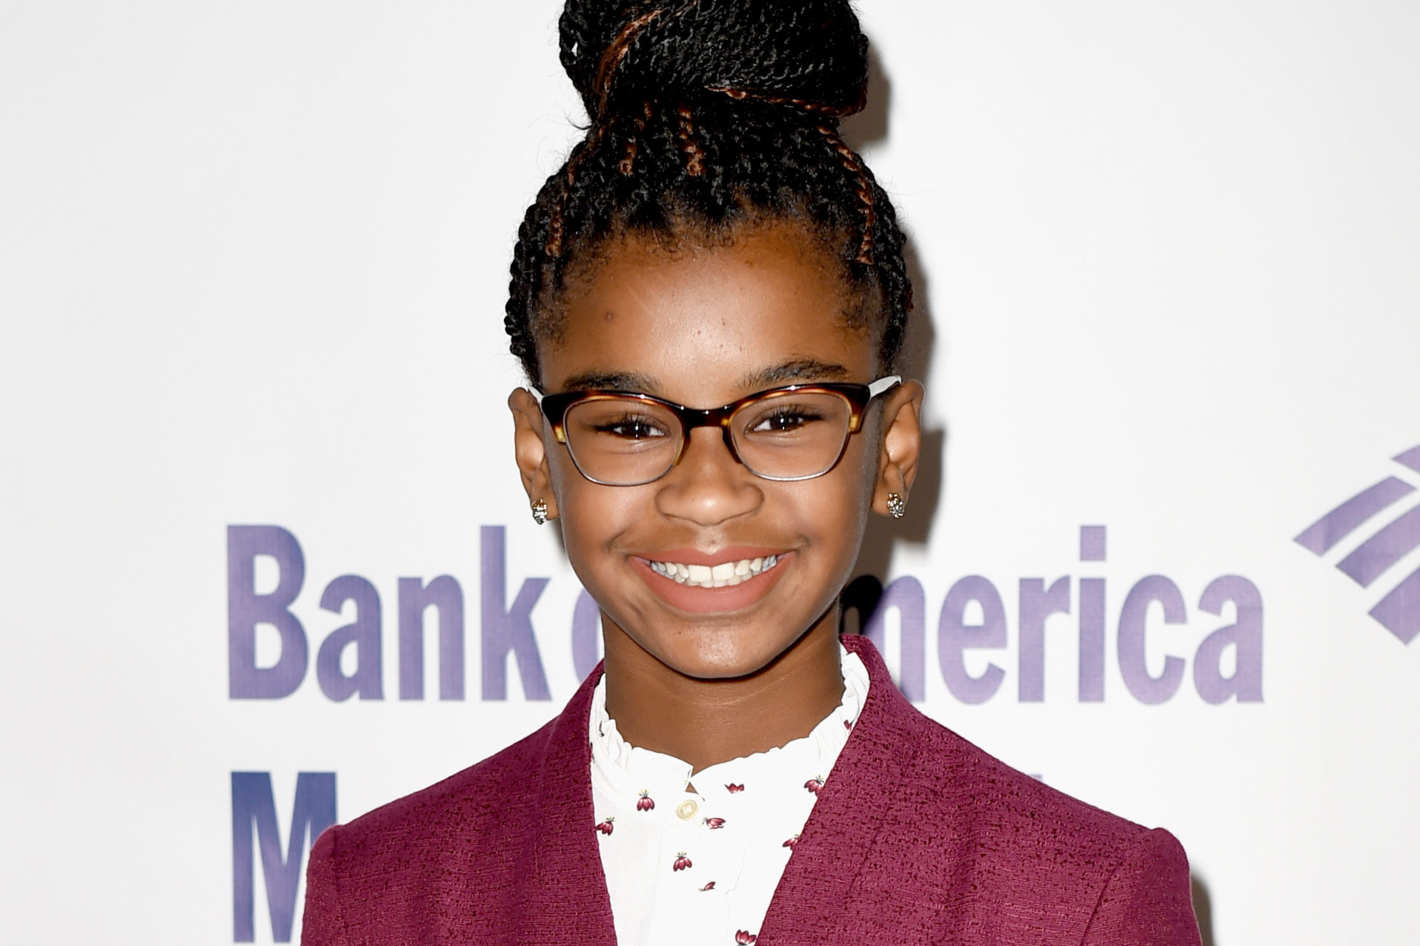 13-Year-Old Marley Dias, Founder of #1000BlackGirlBooks, Is The Youngest Member On Forbes' 30 Under 30 List For 2018.